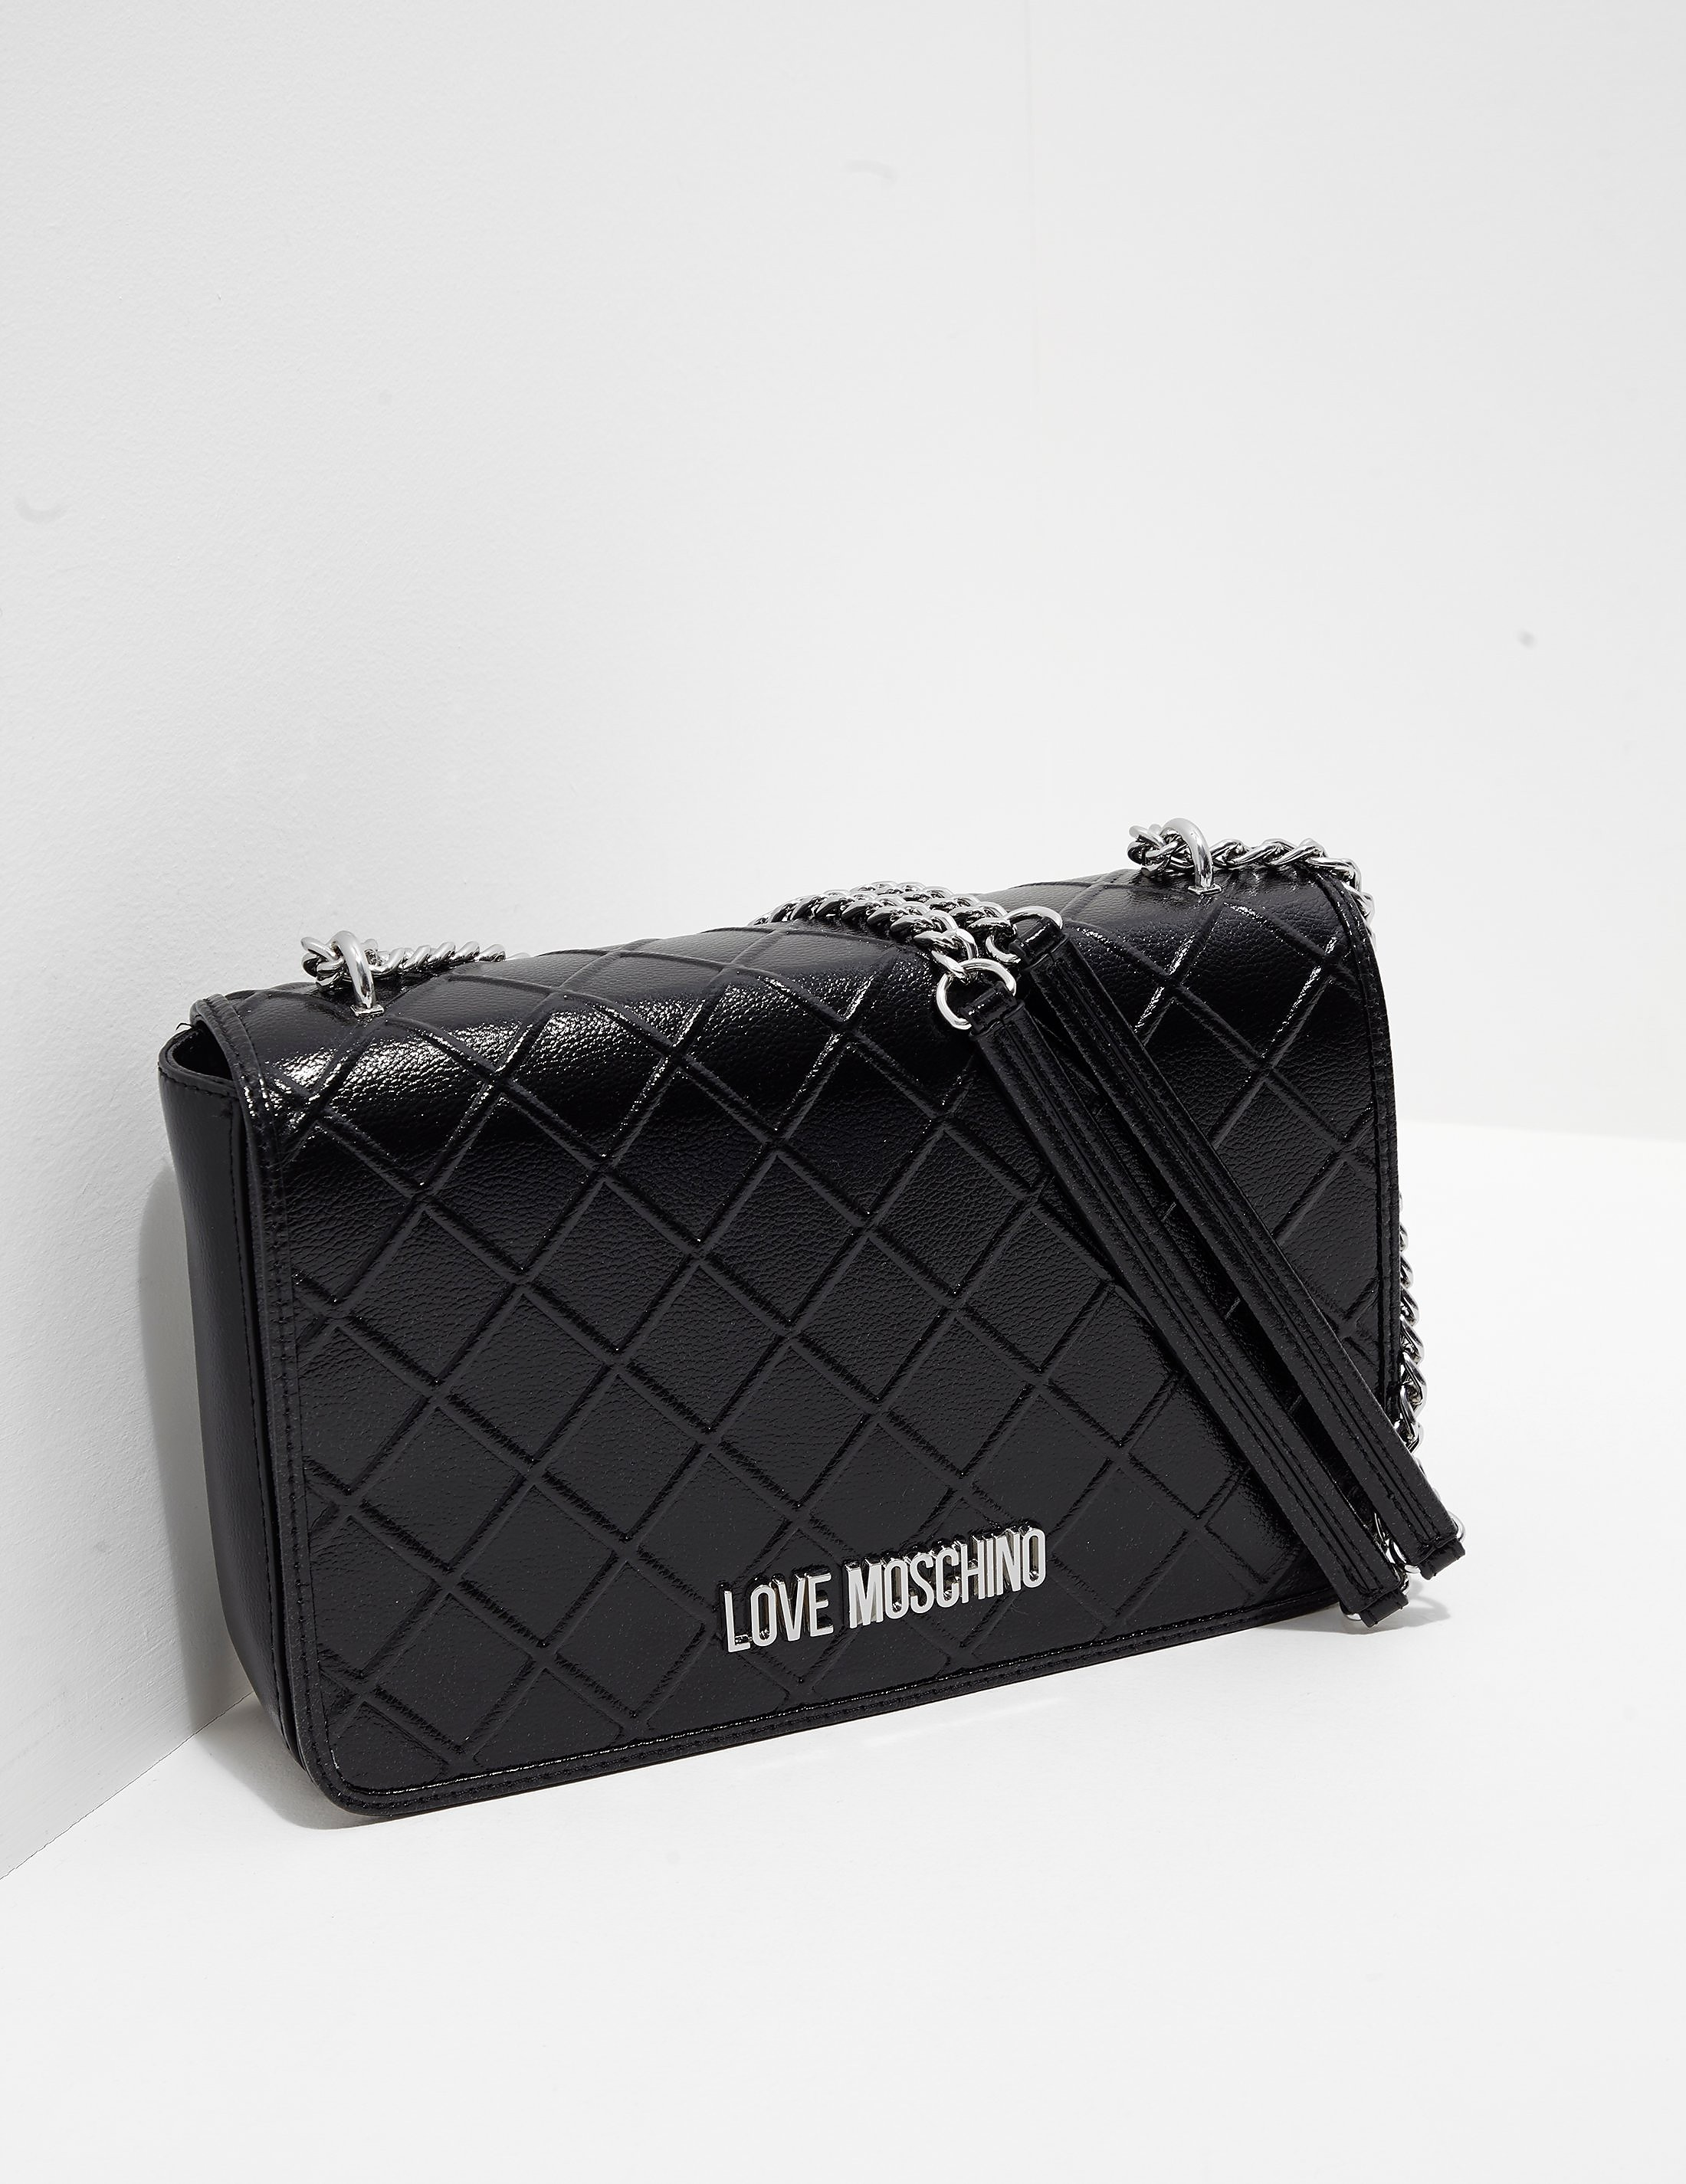 Love Moschino Quilt Chain Shoulder Bag